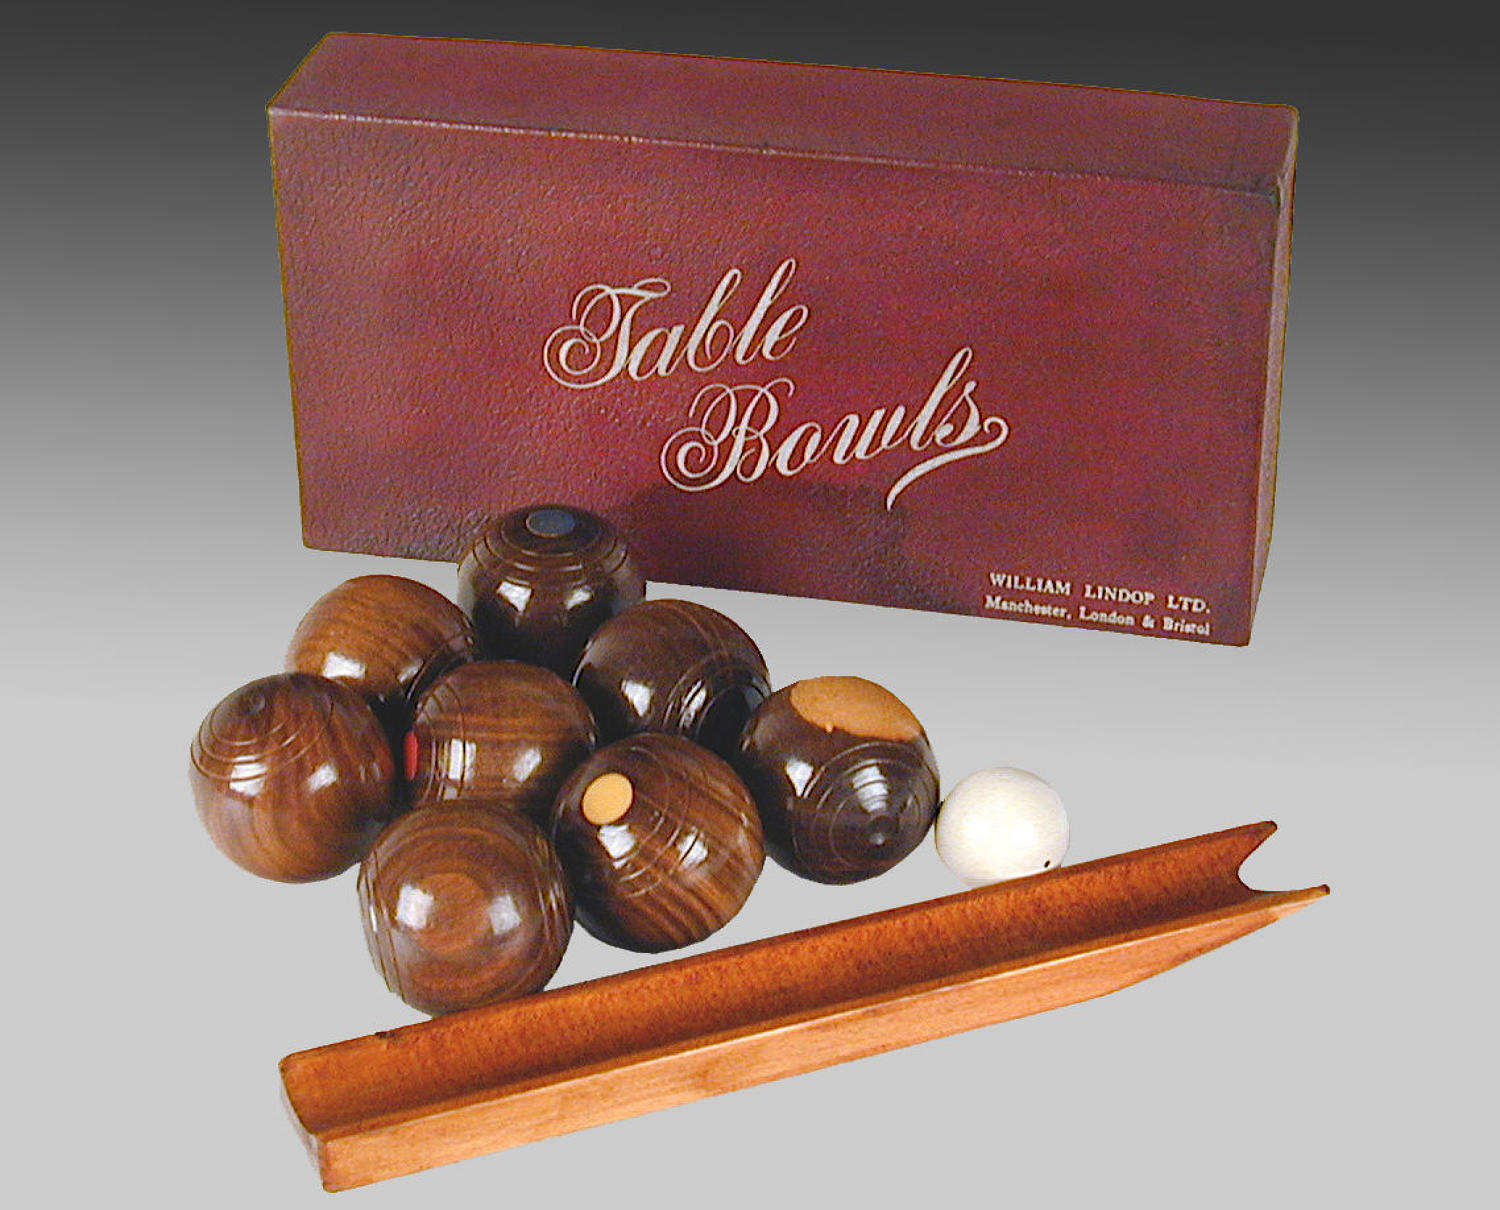 Vintage boxed set of lignum table bowls